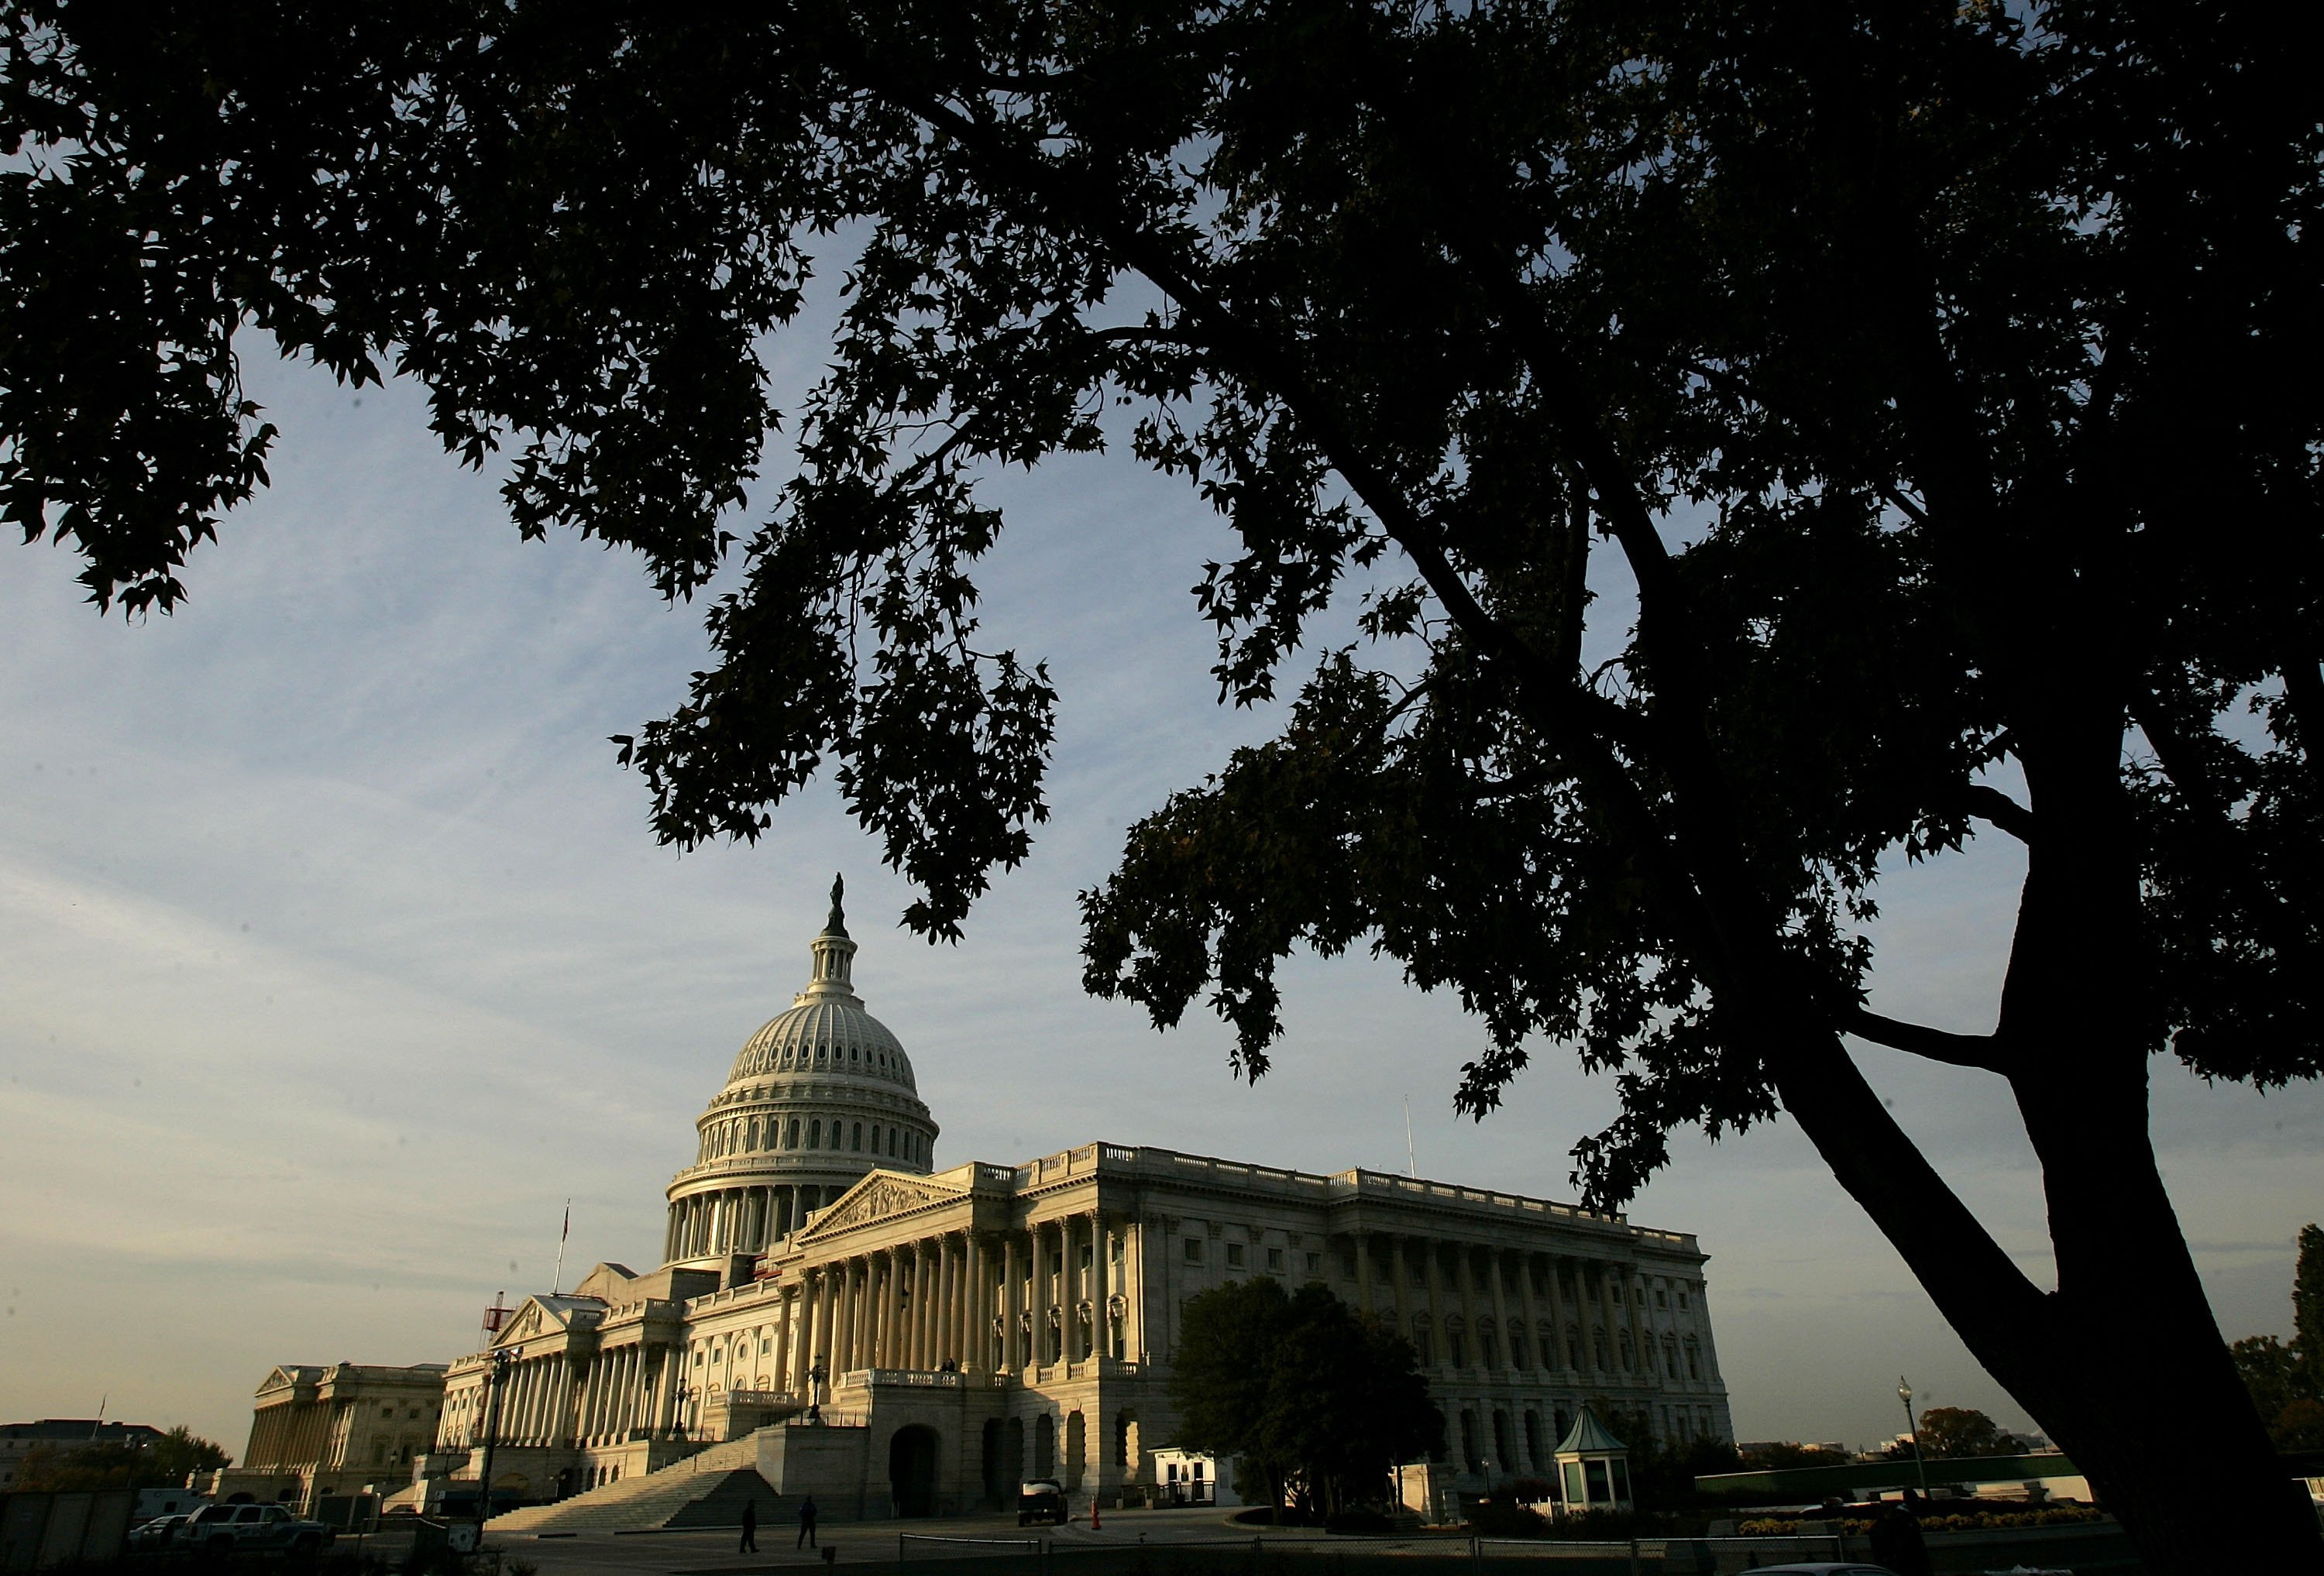 Taxes, end Obamacare: House Republicans unveil summer wish list